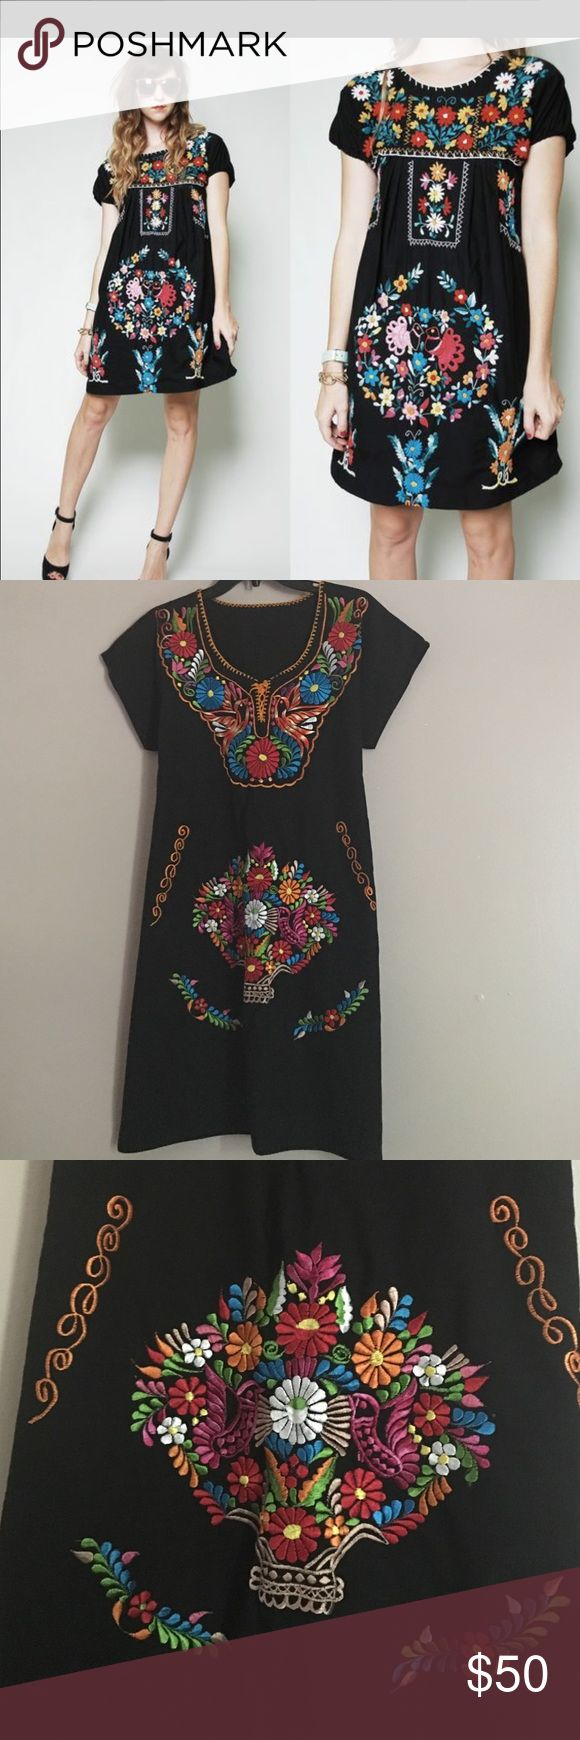 Nice Boho Mexican Dress Embroidered Mexican Dress, Amazing Handmade Details, One  Size Fits Most, Good Ideas